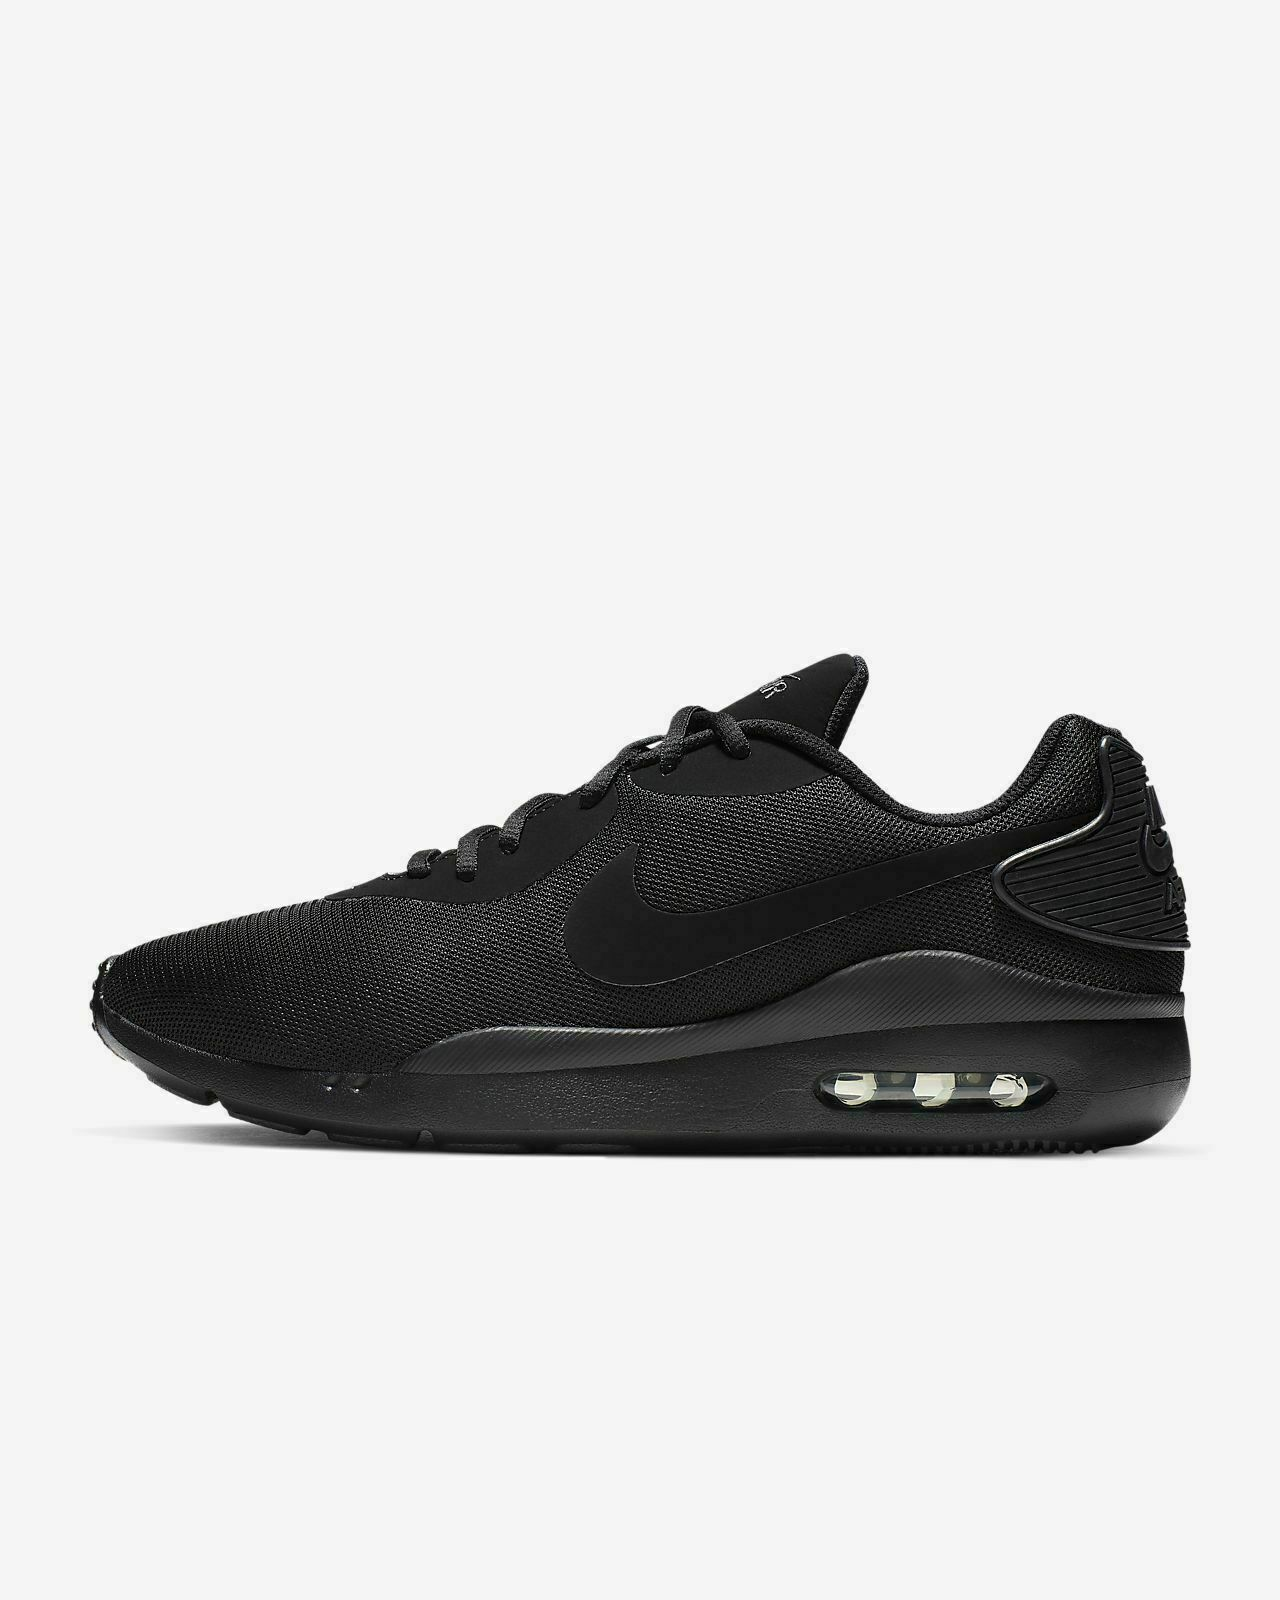 Nike Air Max Oketo Men's Running Shoes AQ2235 006 Black Anth